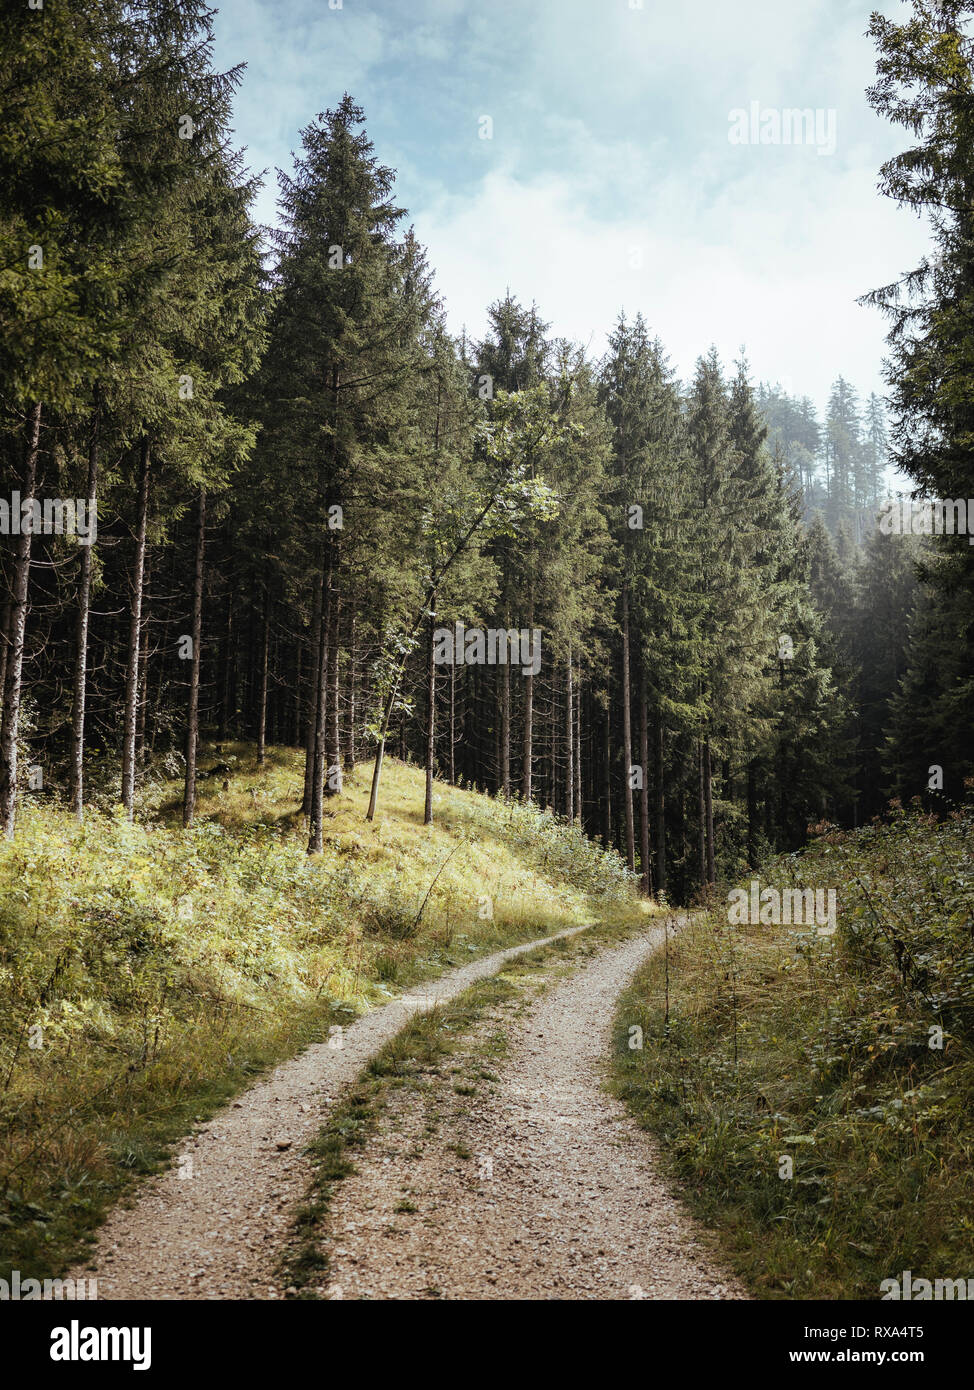 Empty hiking trail amidst trees in forest - Stock Image